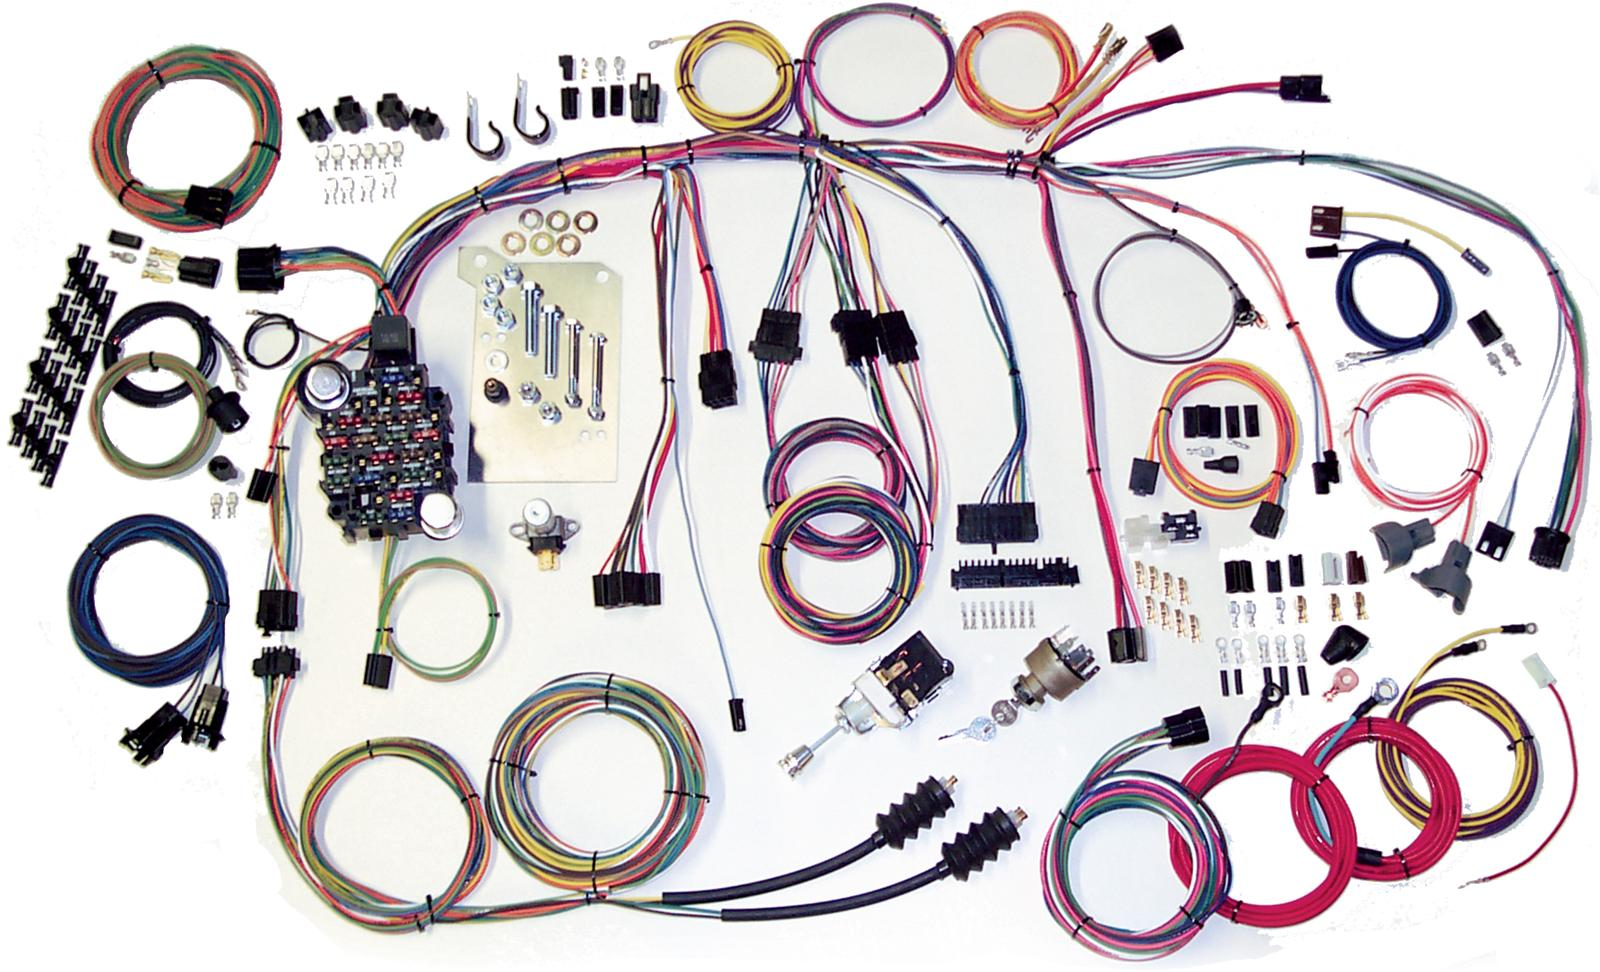 hight resolution of american autowire classic update series wiring harness kits 500560 free shipping on orders over 99 at summit racing